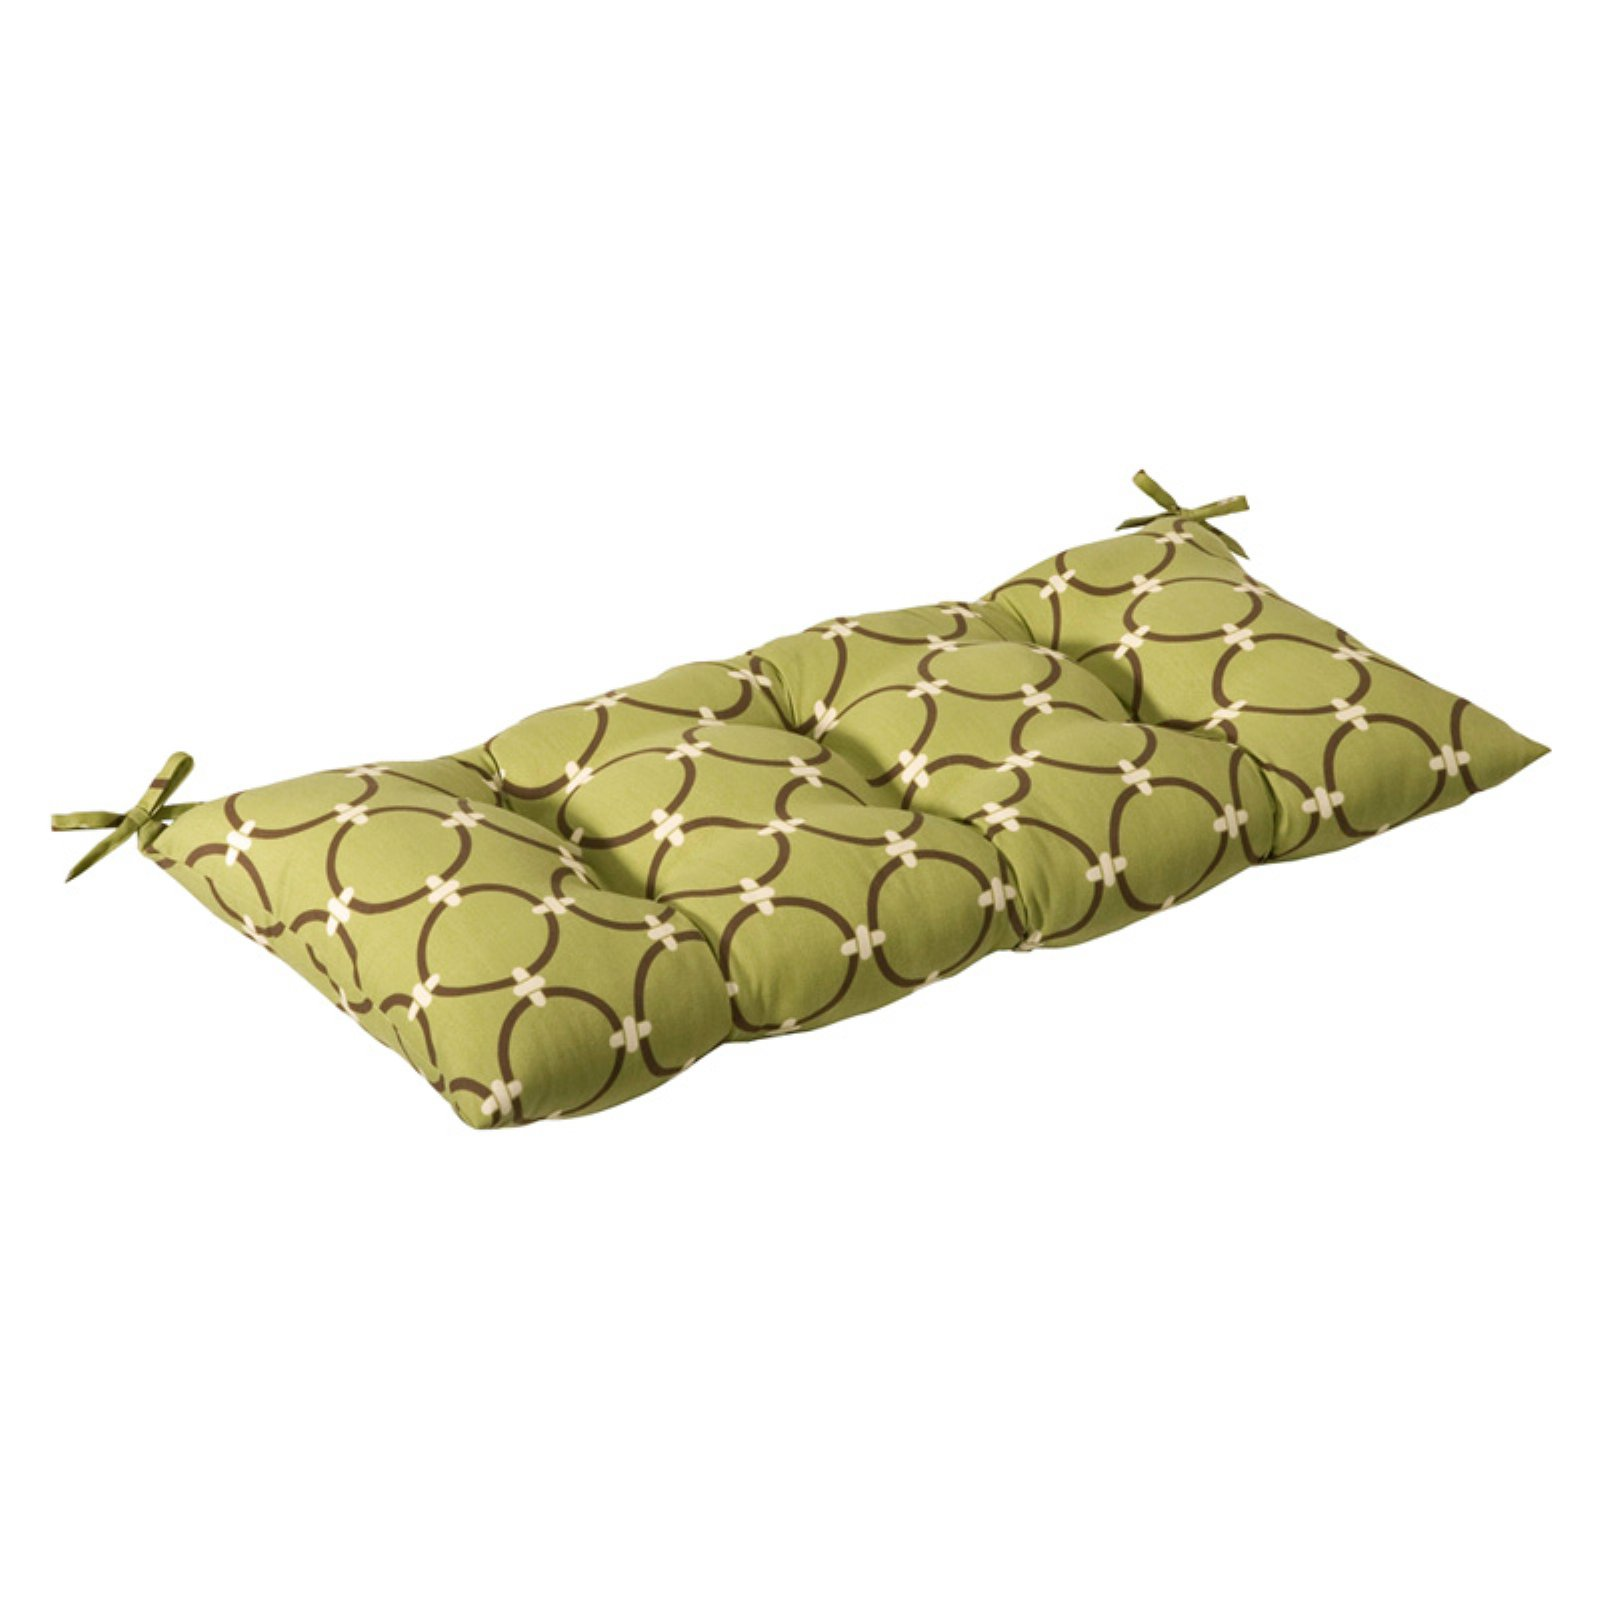 Pillow Perfect Outdoor Tufted Loveseat Cushion - 44W x 18.5D x 6H in.